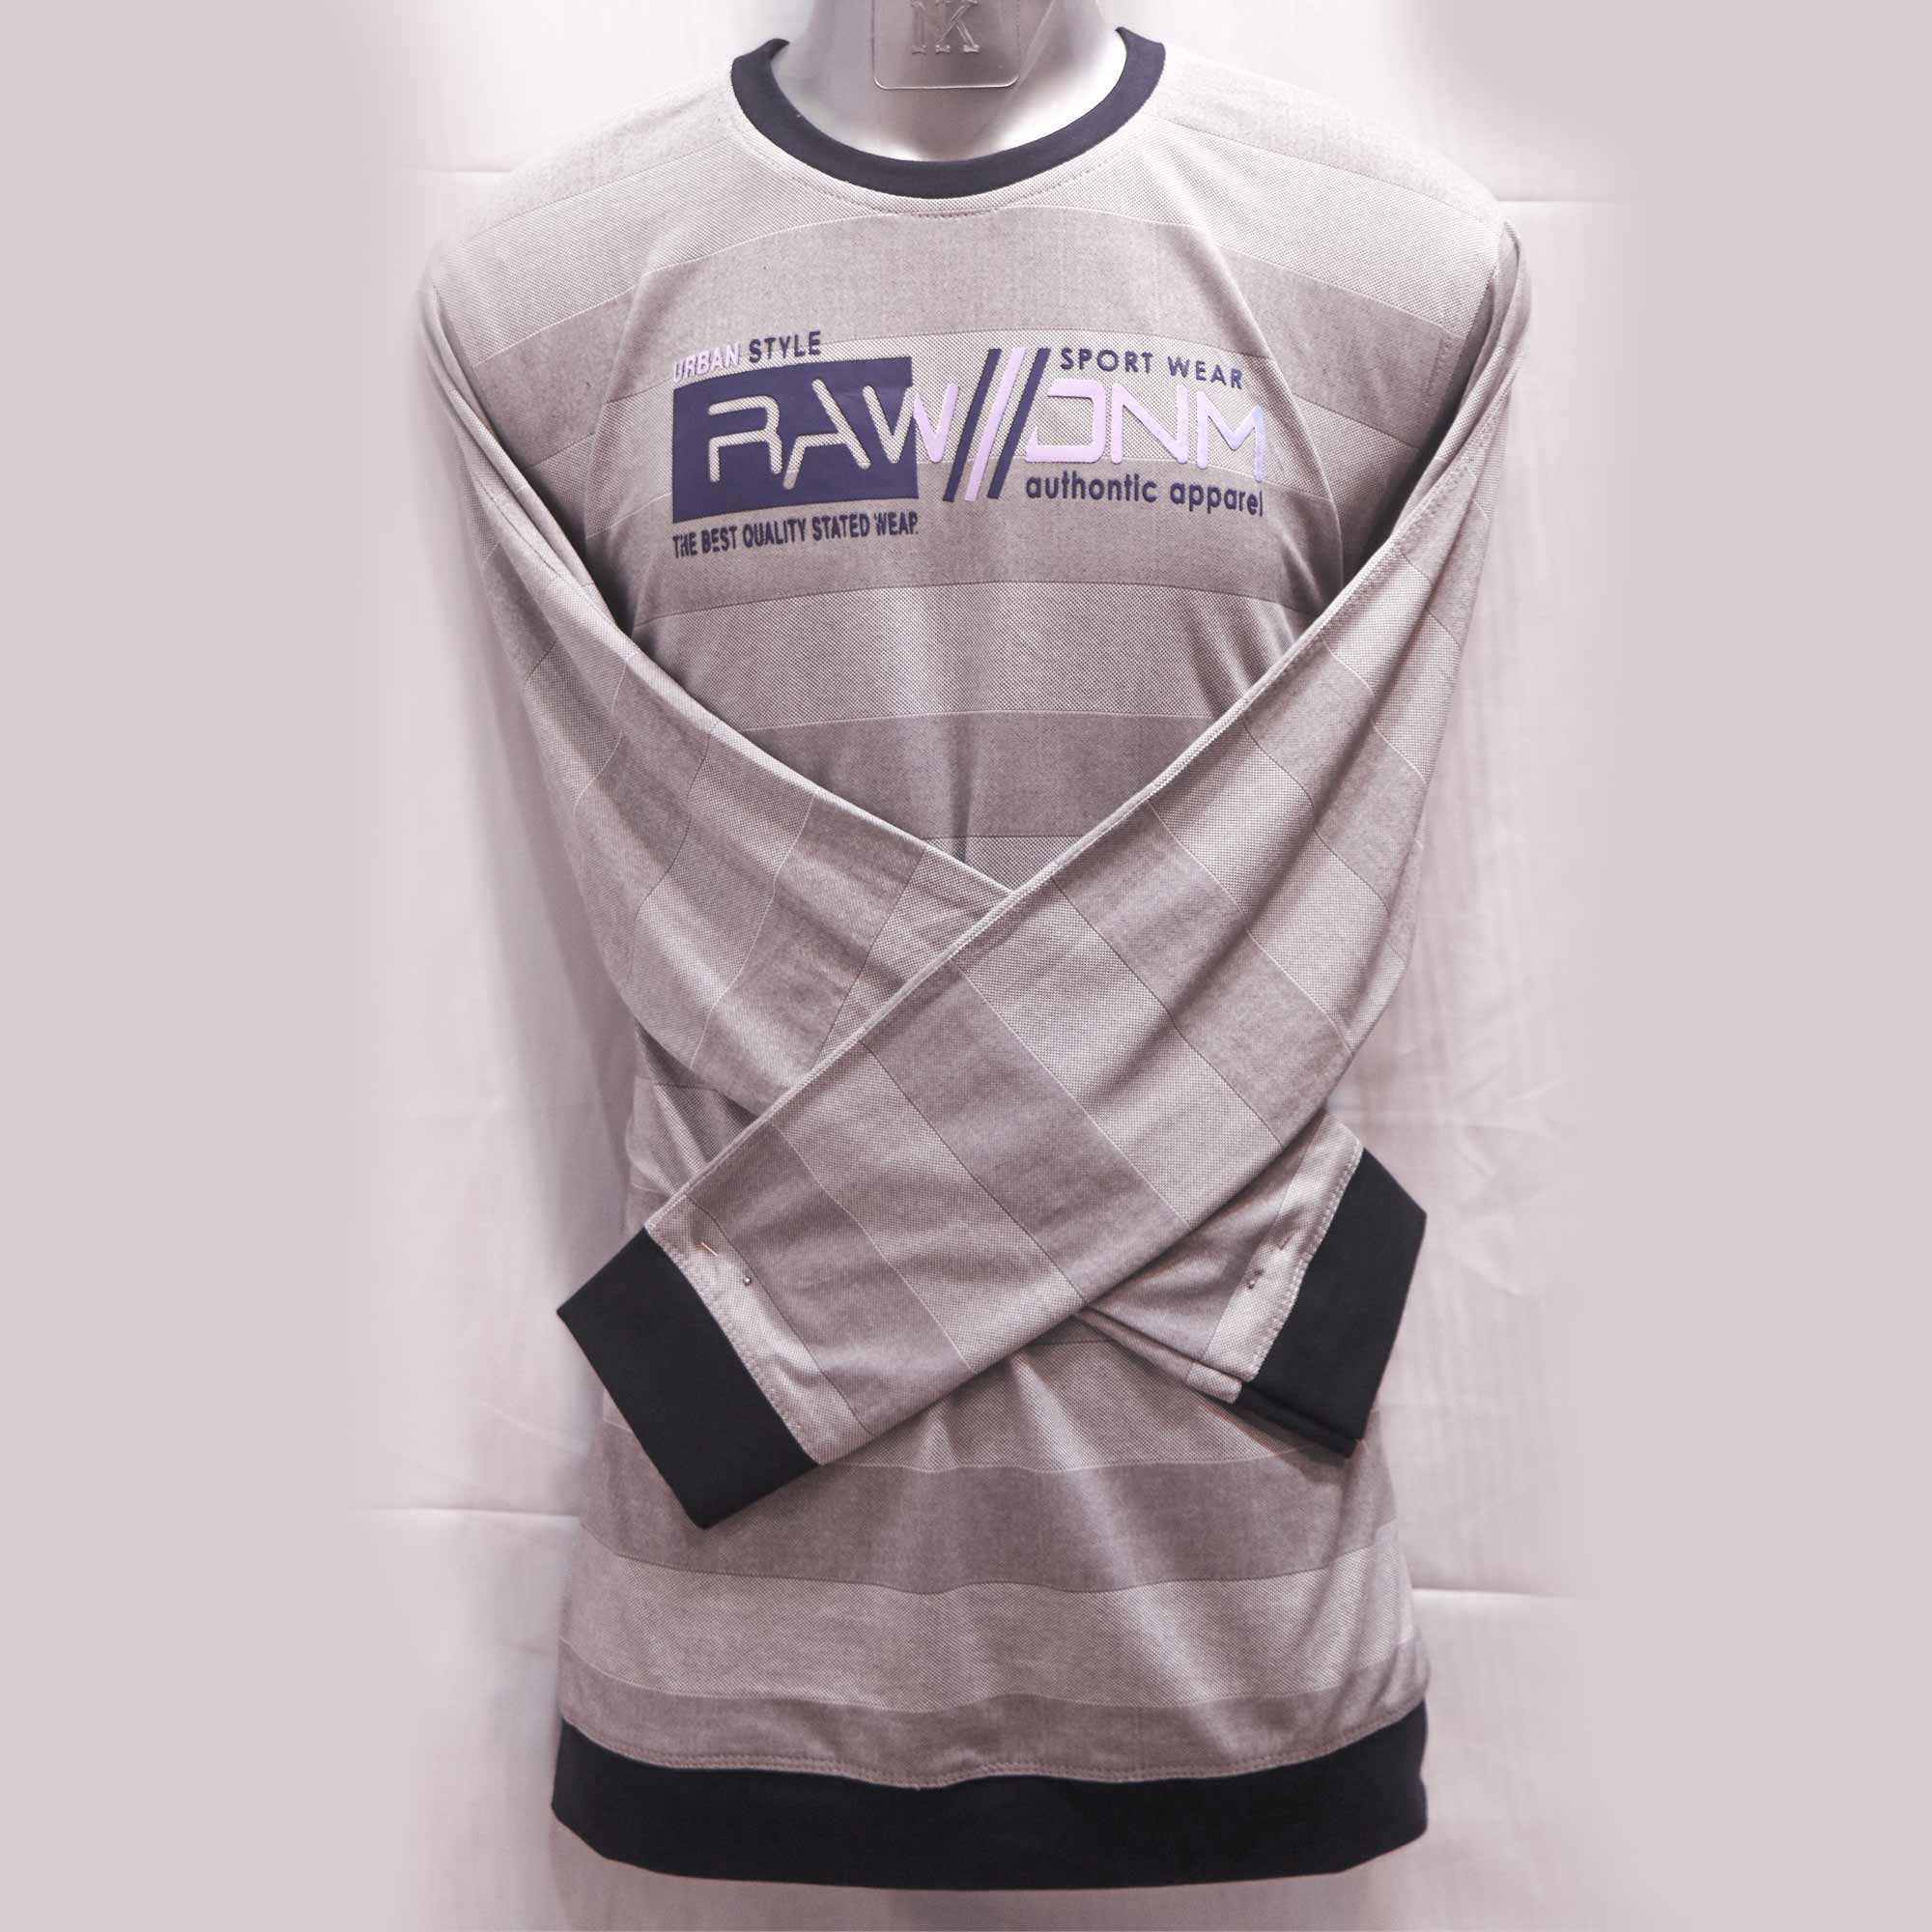 Black border in full hand T-shirt Round-Throat For Stylish man gray color blends with the white